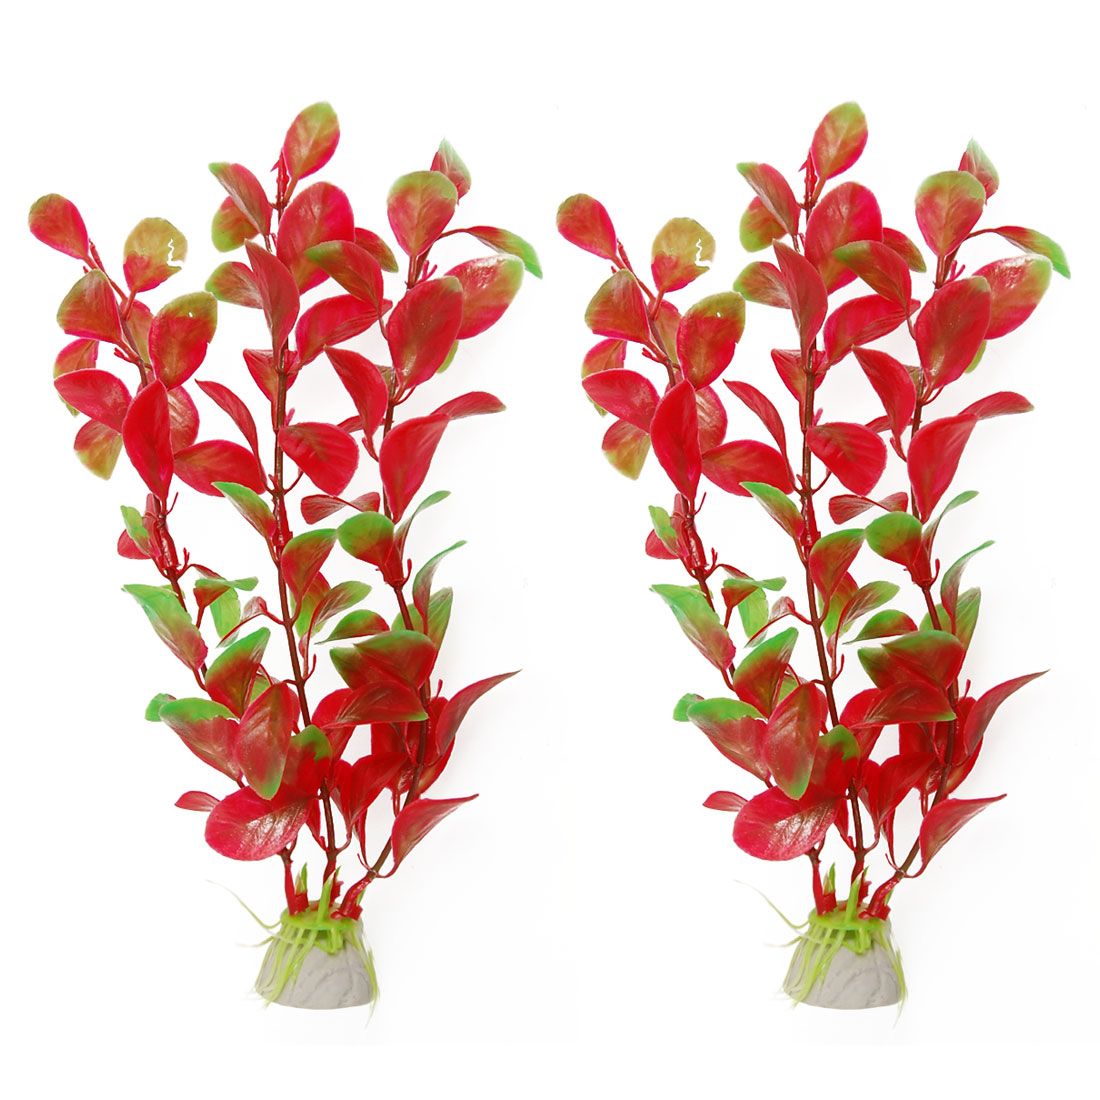 2pcs Manmade Red Green Underwater Plants Aquarium Decor